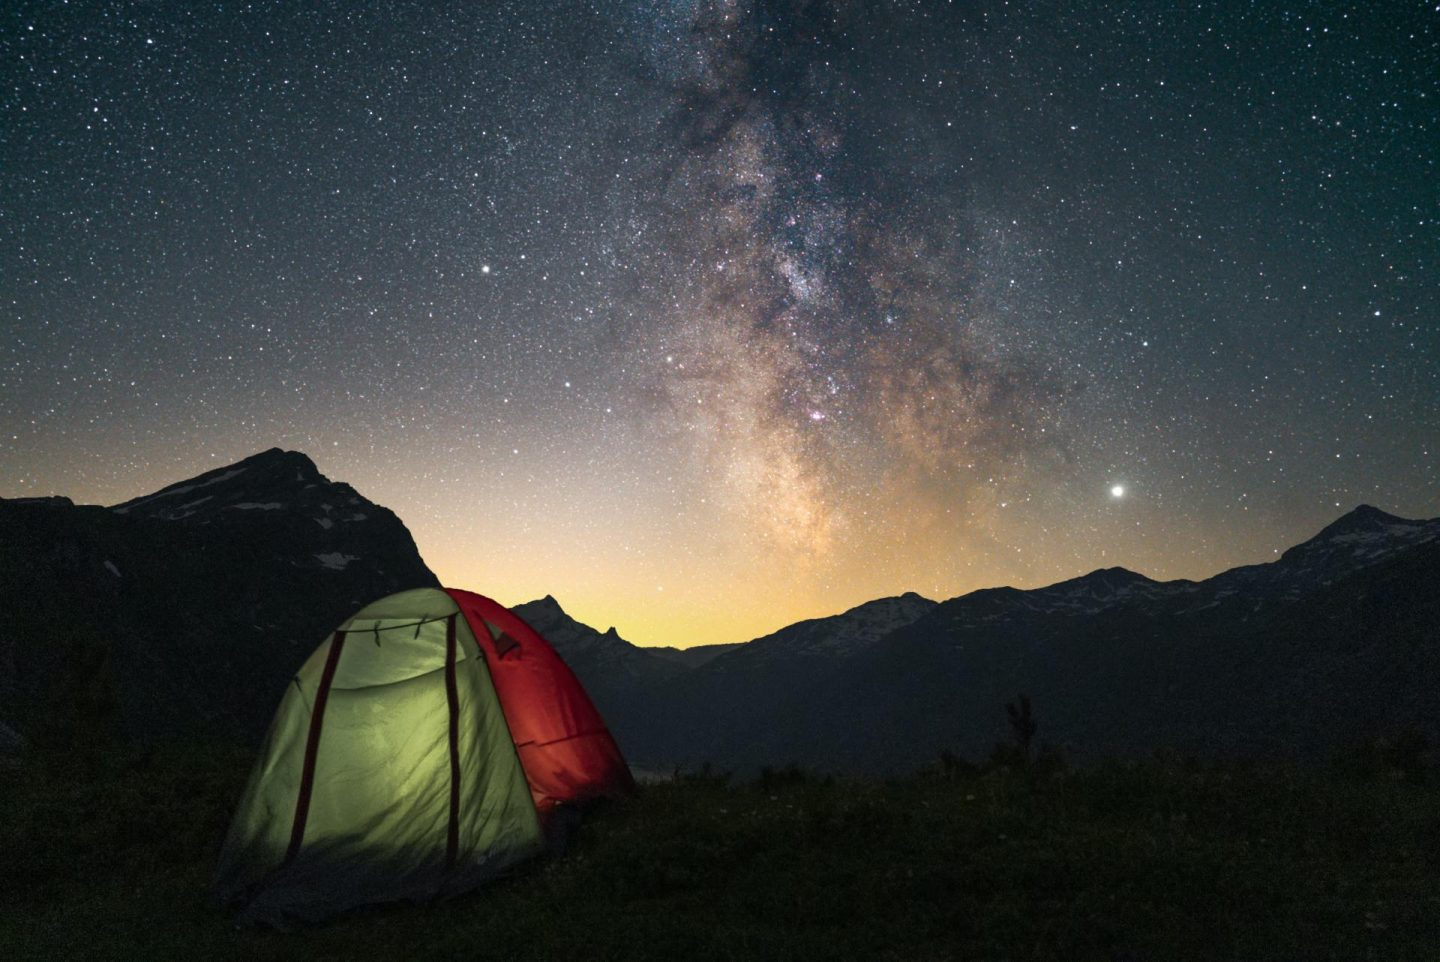 How To Buy Eco-Friendly Outdoor Kit | Guide To Ethical Adventure Gear, how to buy recycled and planey-friendly outdoor clothing & camping kit